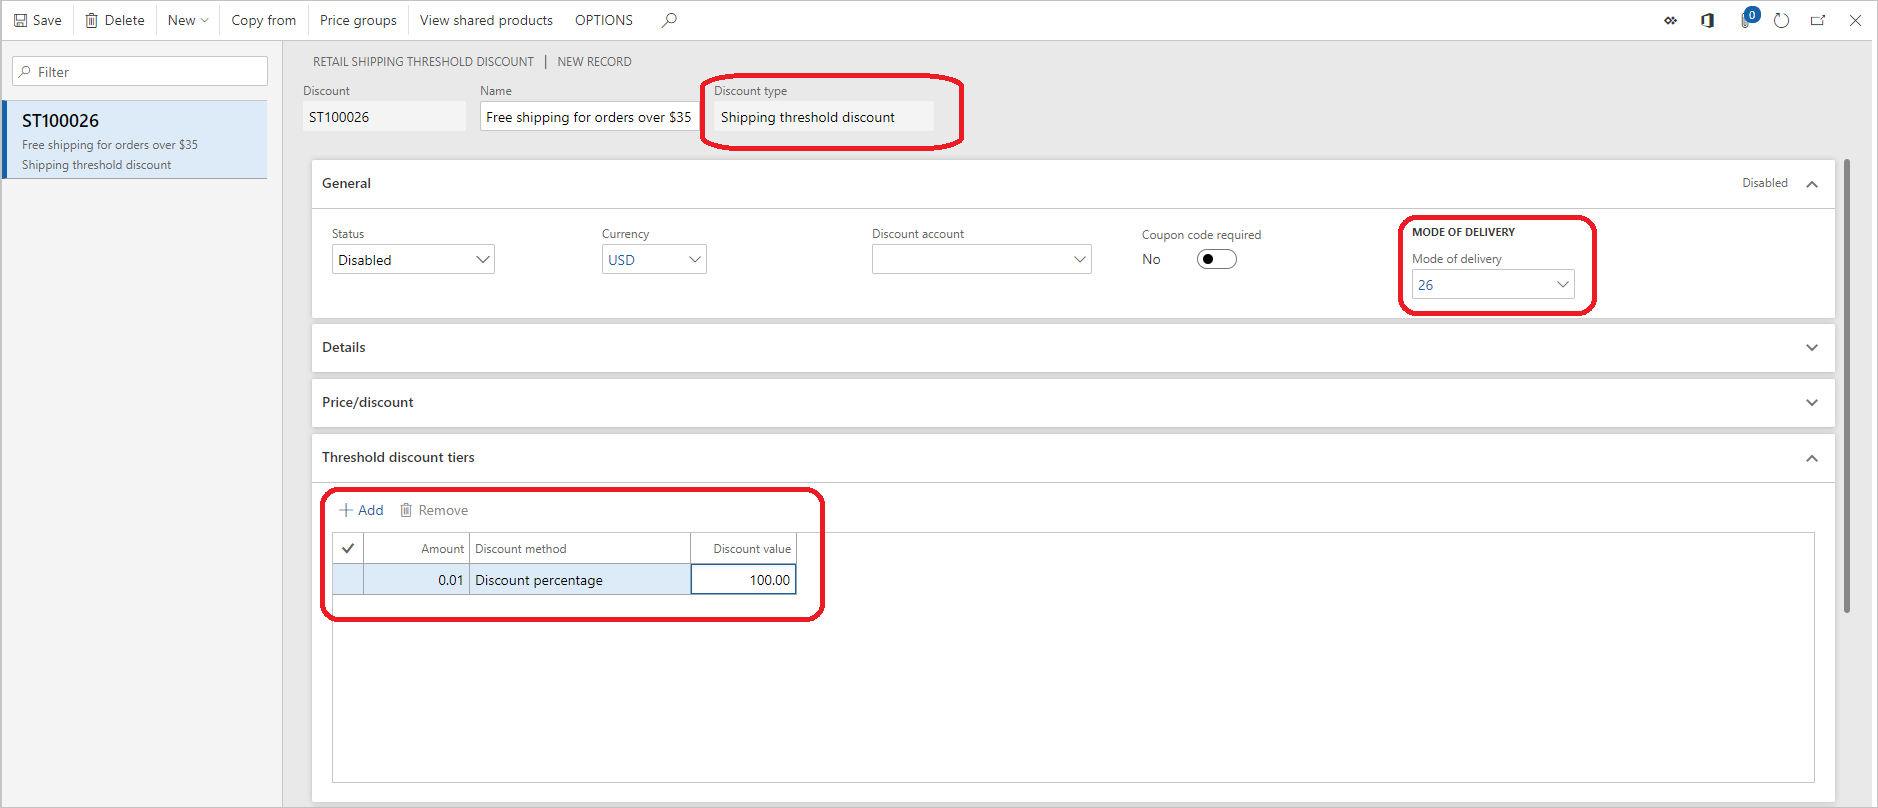 Shipping discount overview - Retail | Dynamics 365